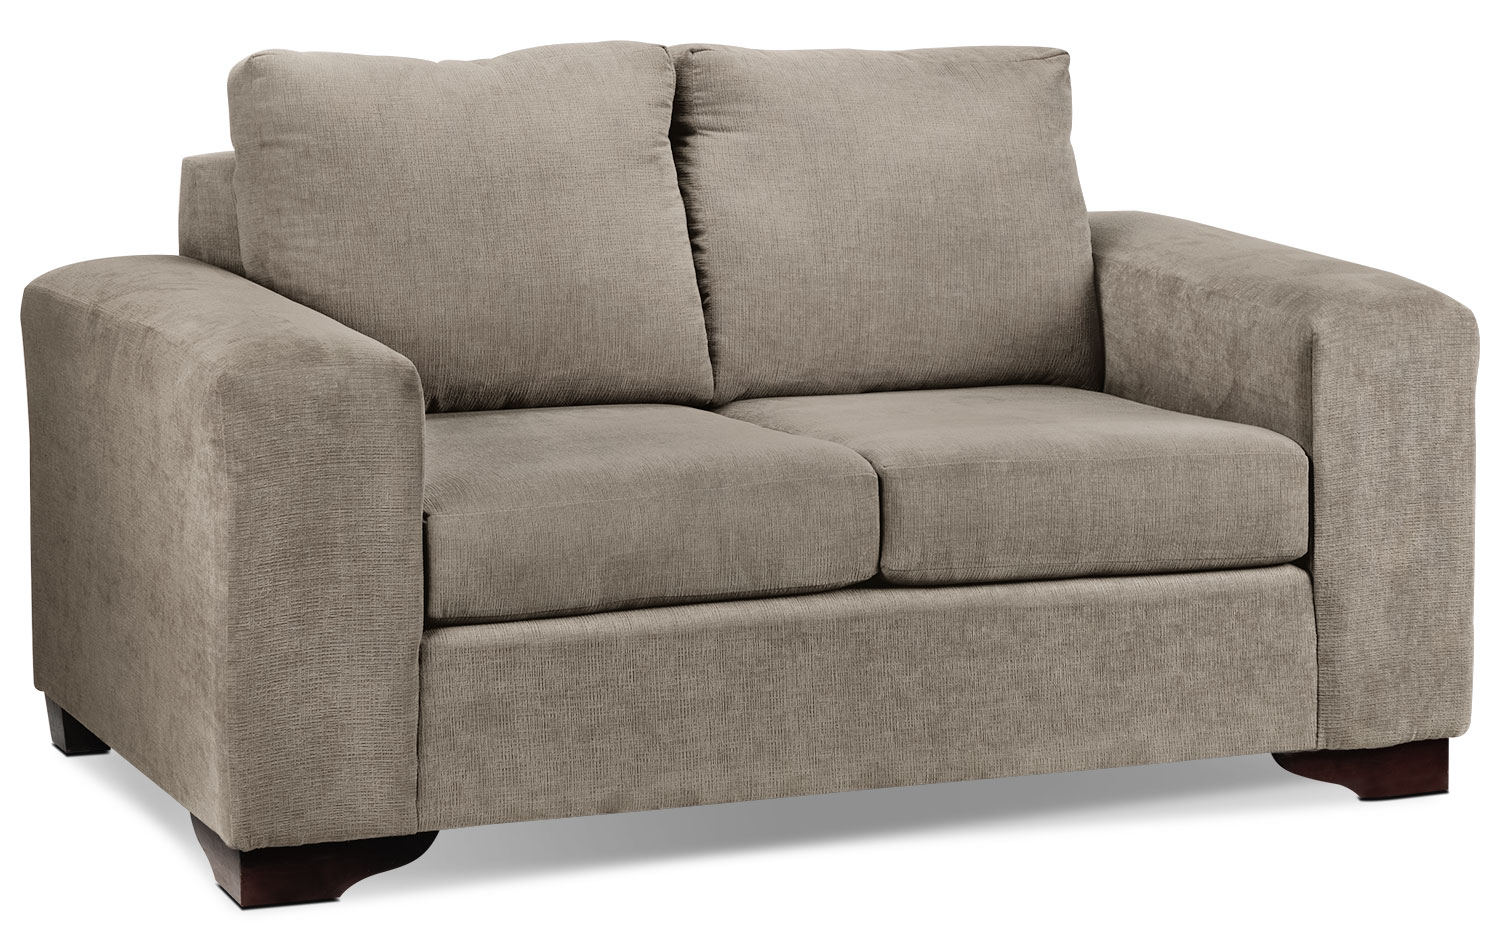 Living Room Furniture - Fava Loveseat - Pewter